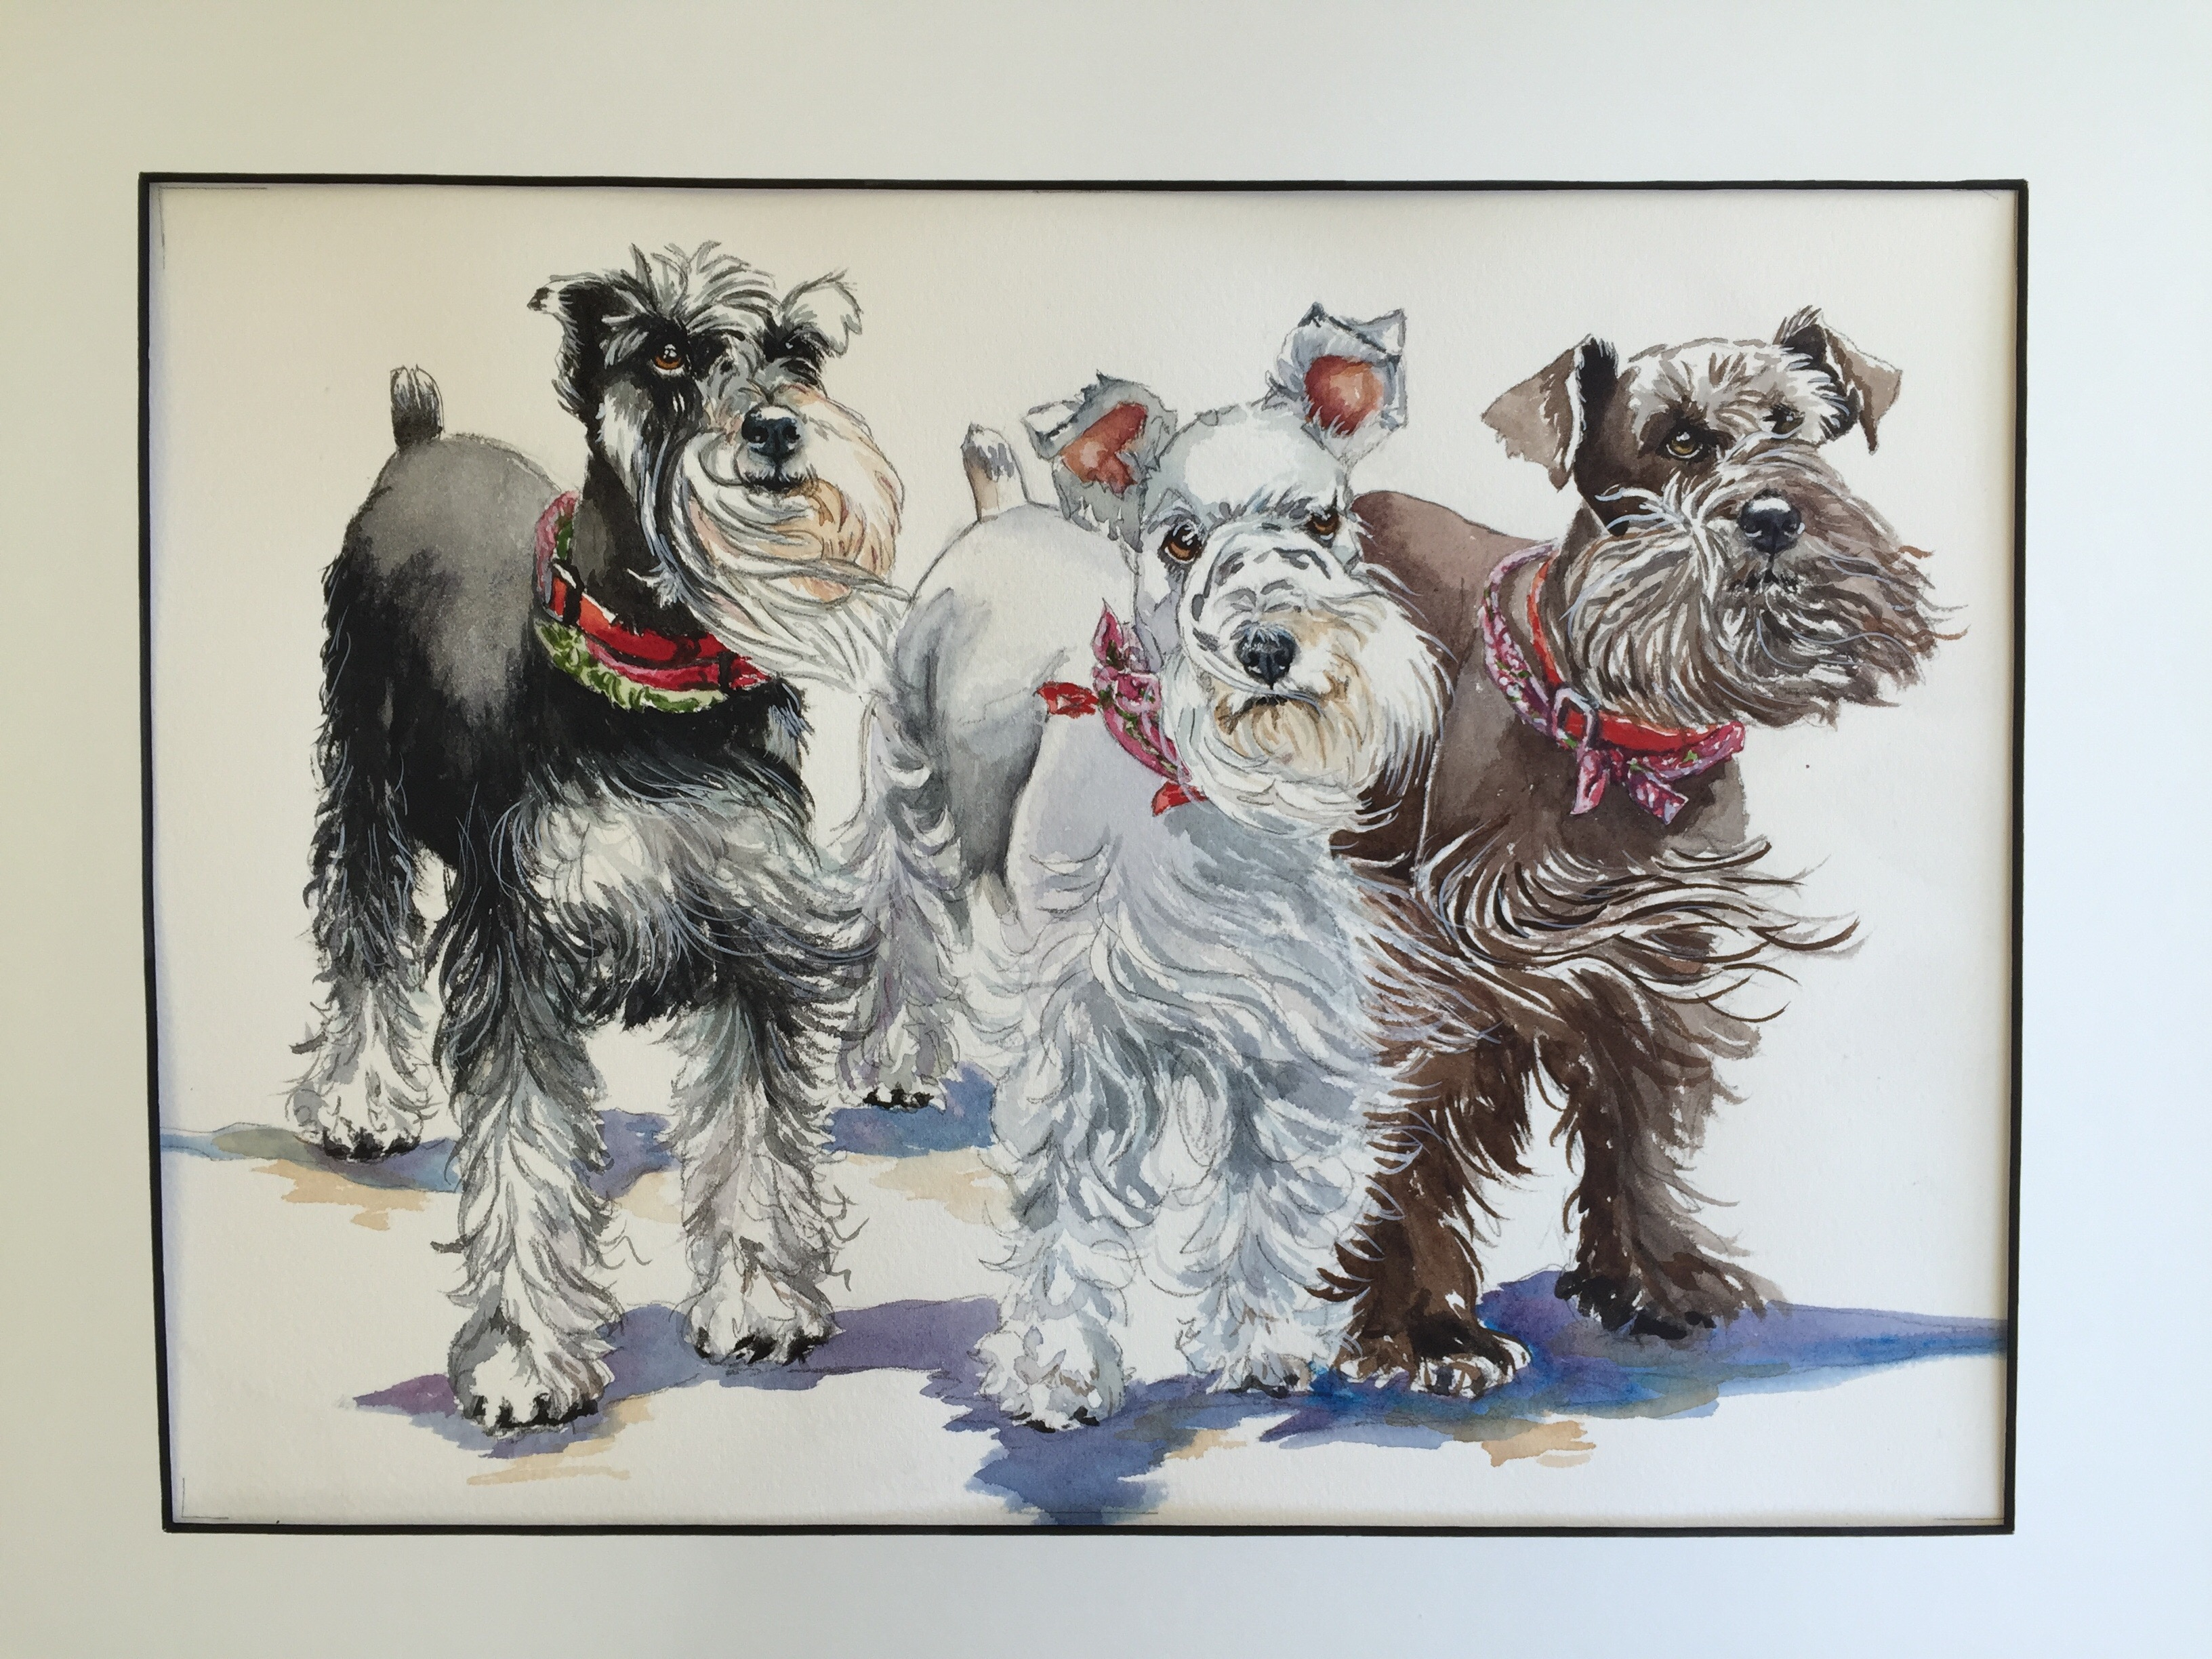 Watercolor painting of 3 Schnauzers